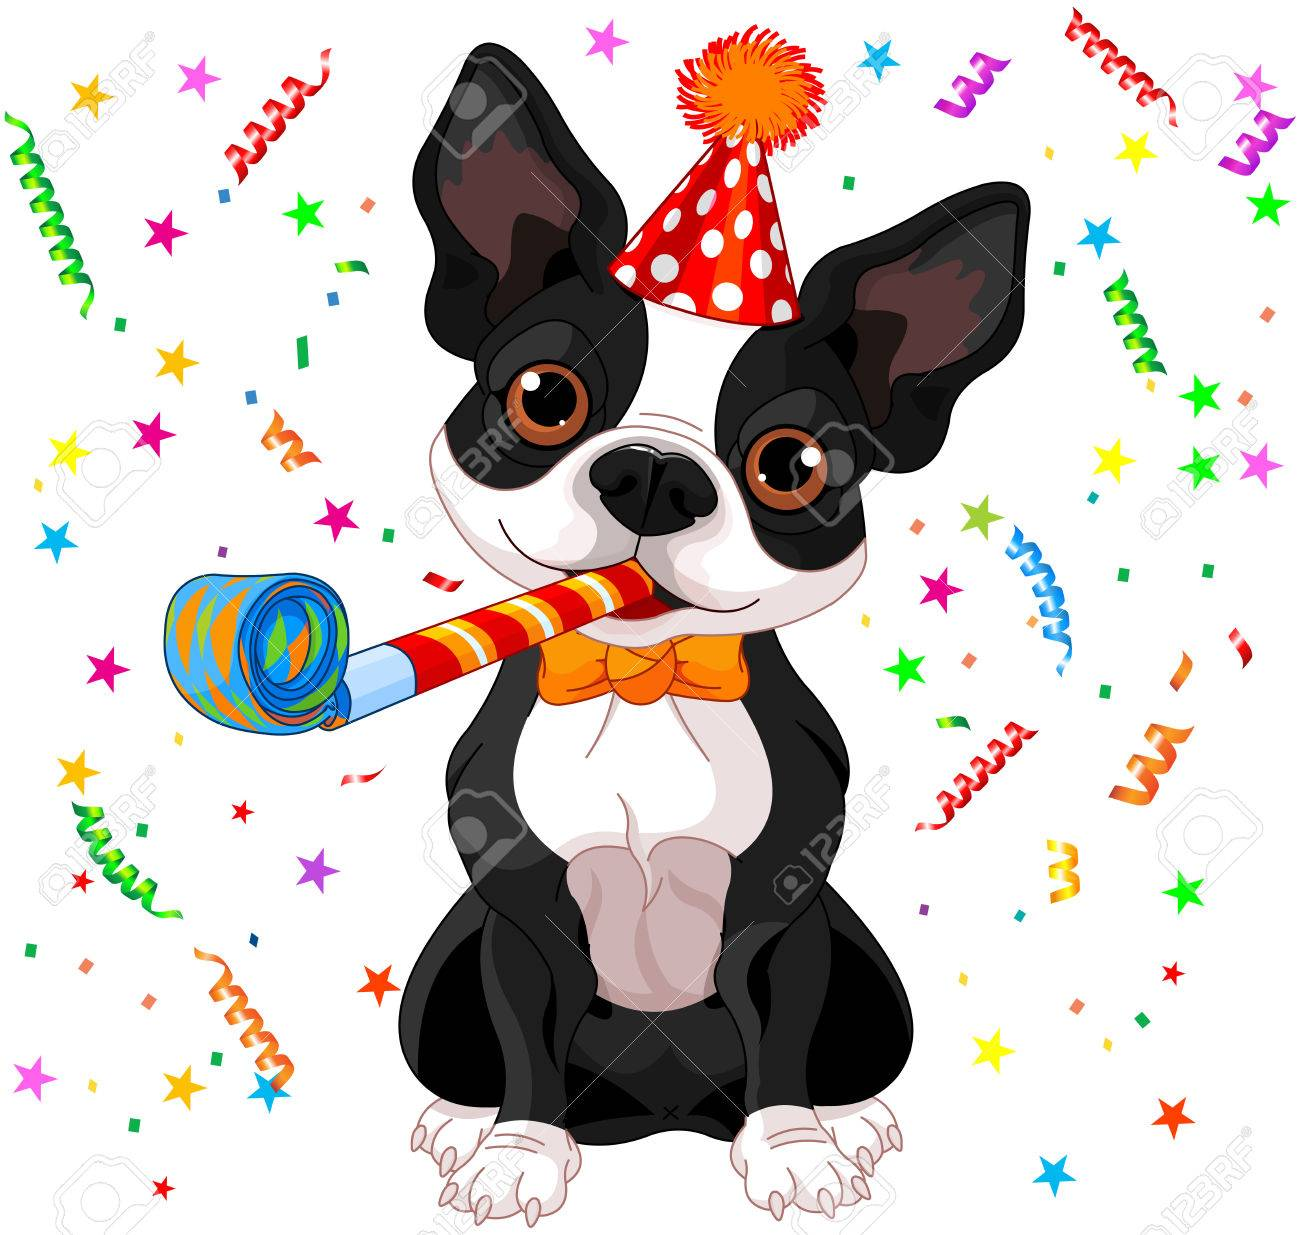 Le manque d'humilité chez les professionnels du chien 35588778-illustration-of-cute-boston-terrier-celebrating